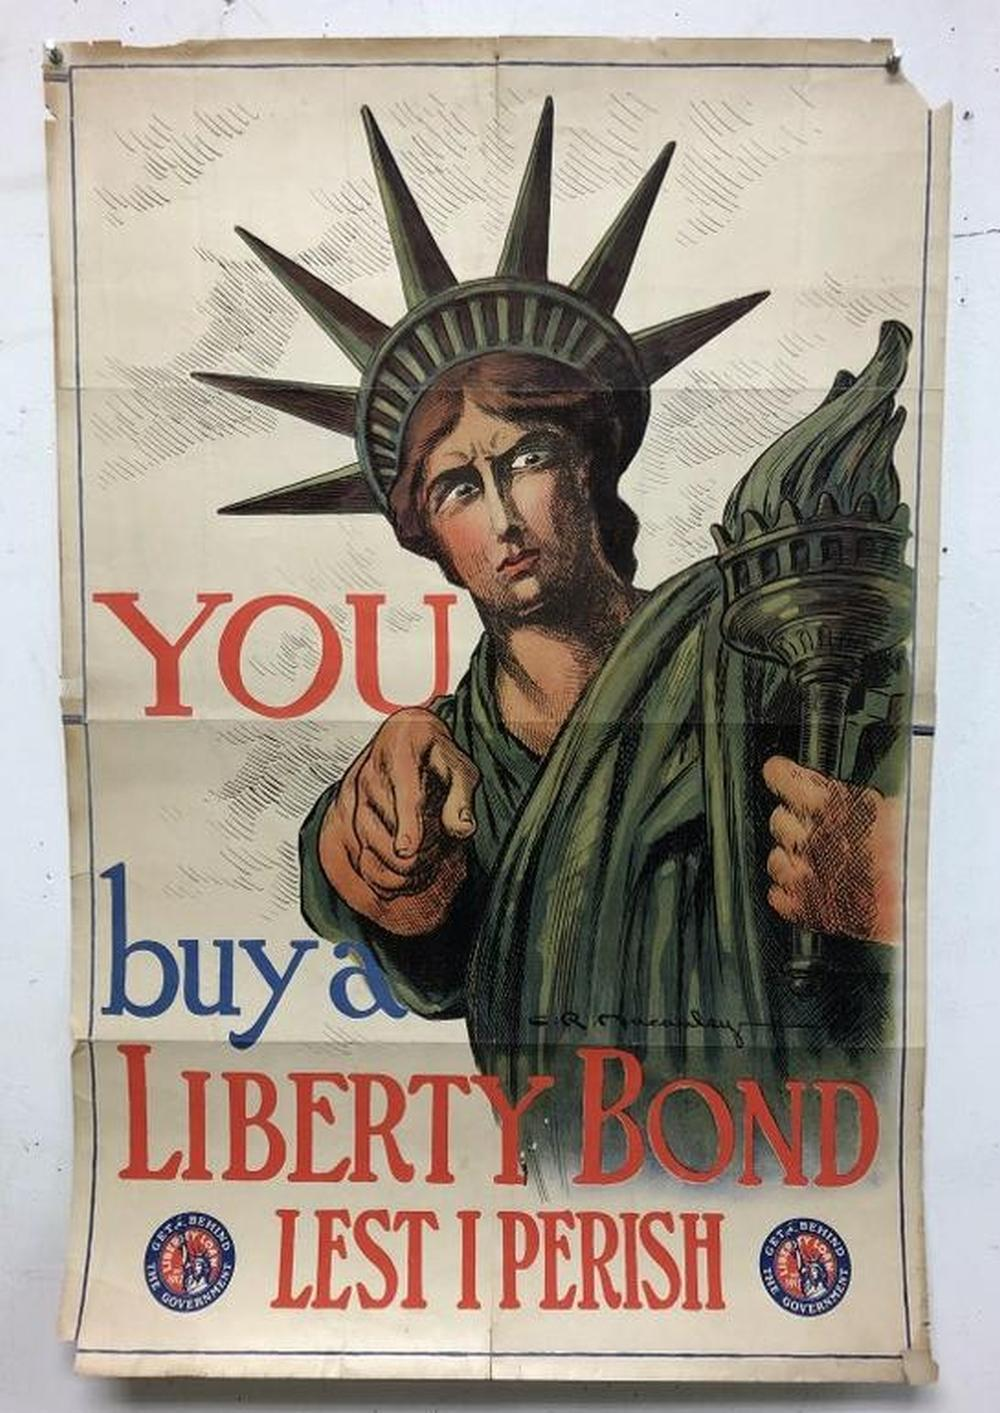 WWI POSTER-YOU BUY A LIBERTY BOND LEST I PERISH, ARTIST